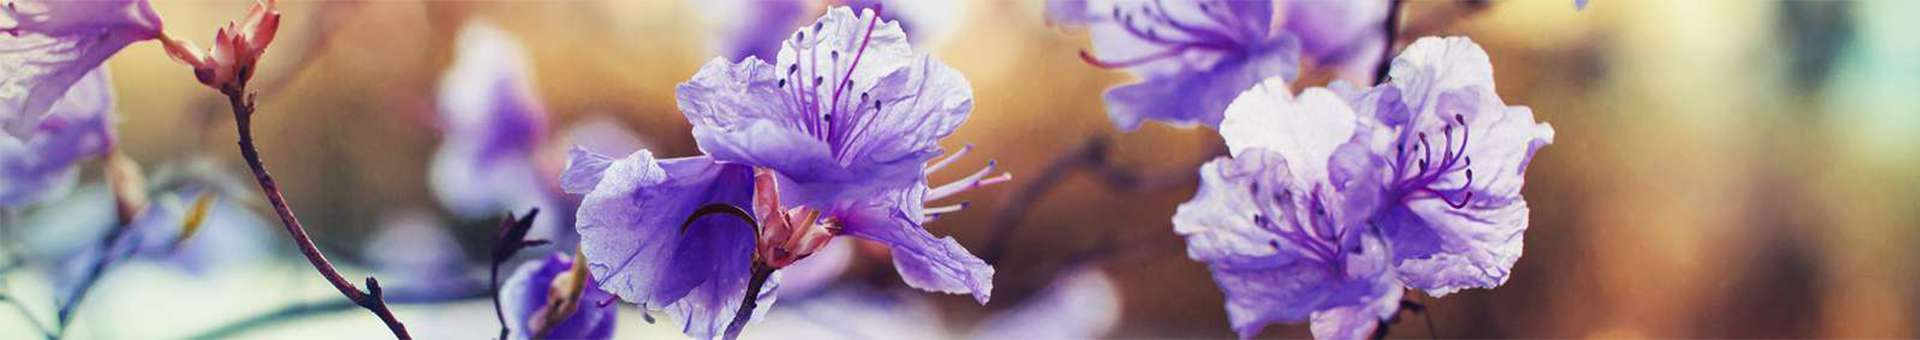 Search Whois information of domain names  .flowers